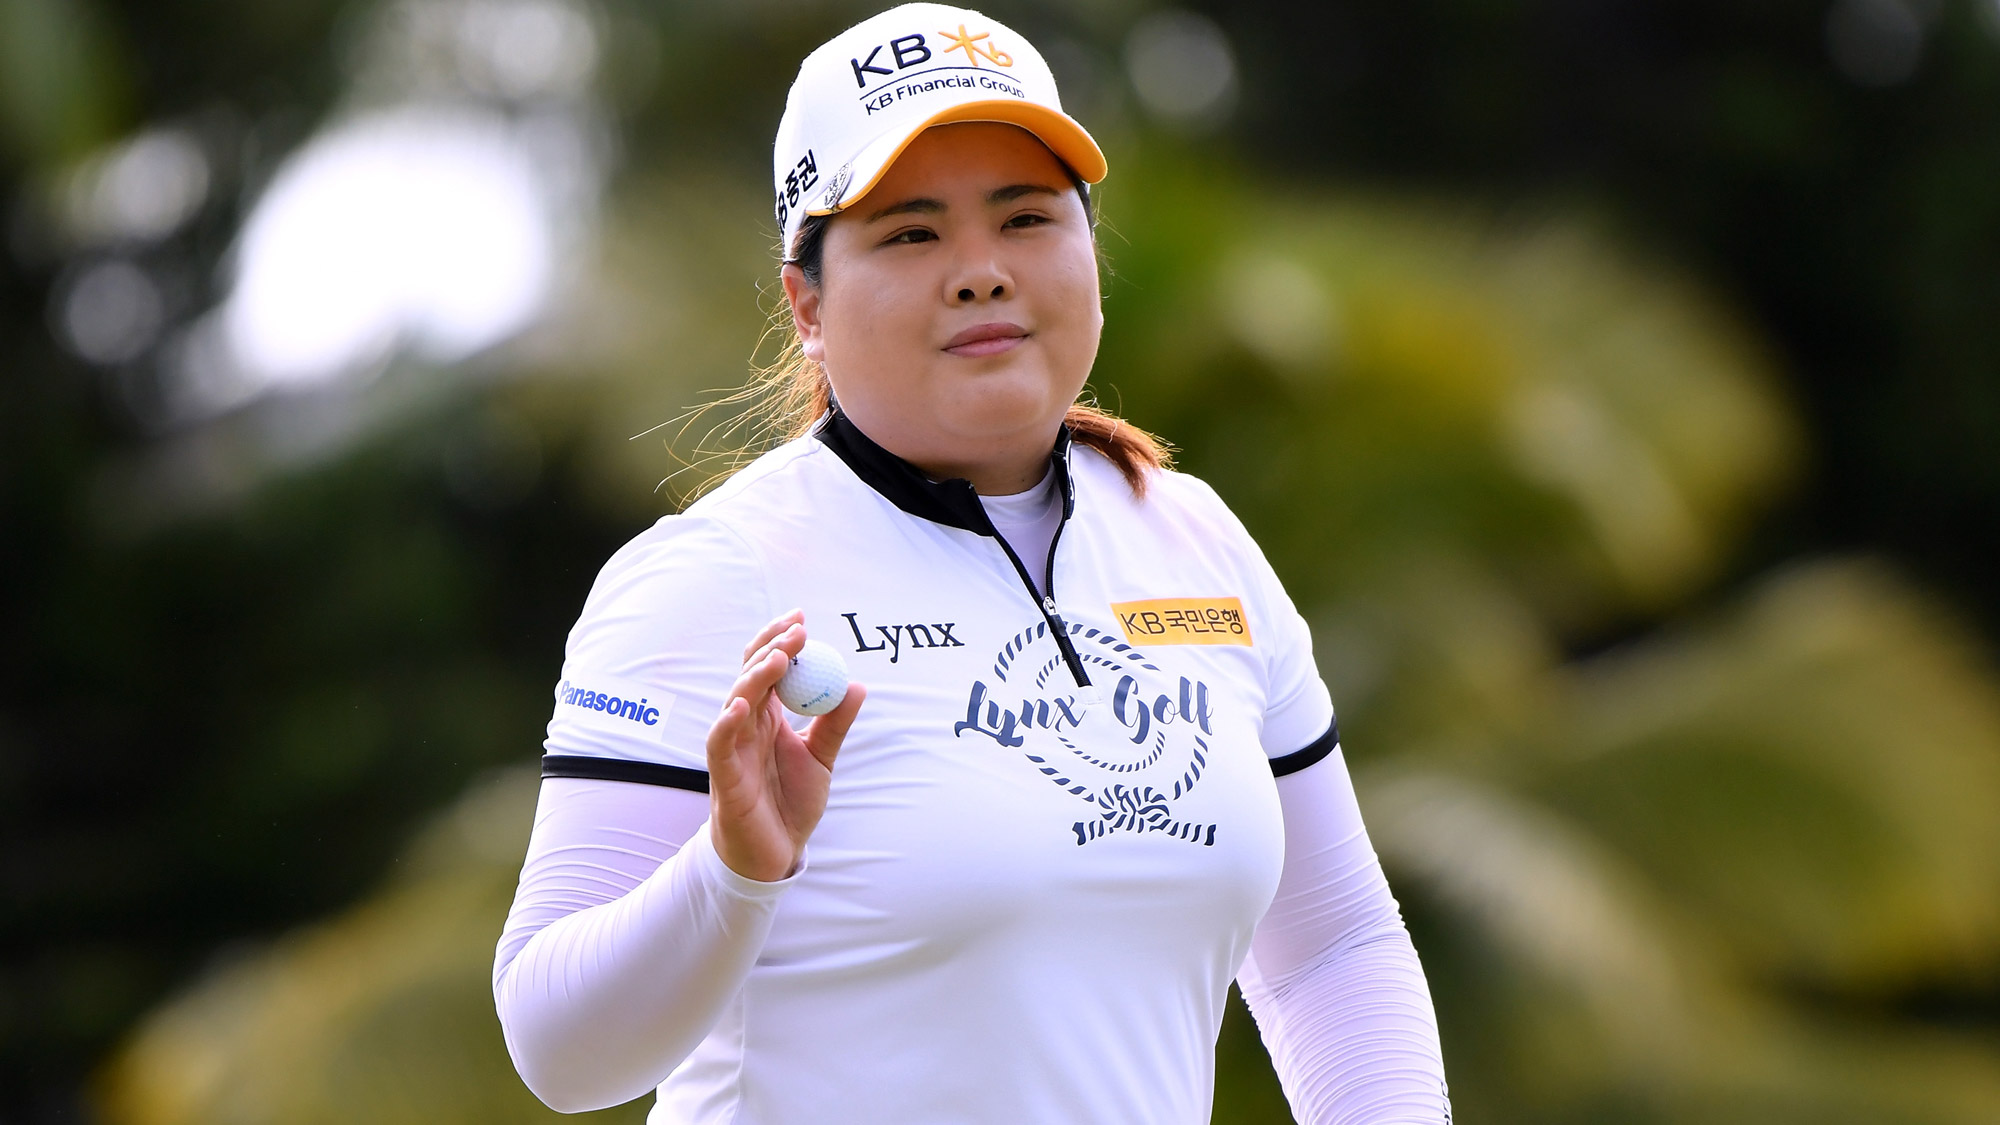 Inbee Park Turns in Bogey-Free 69 on Thursday